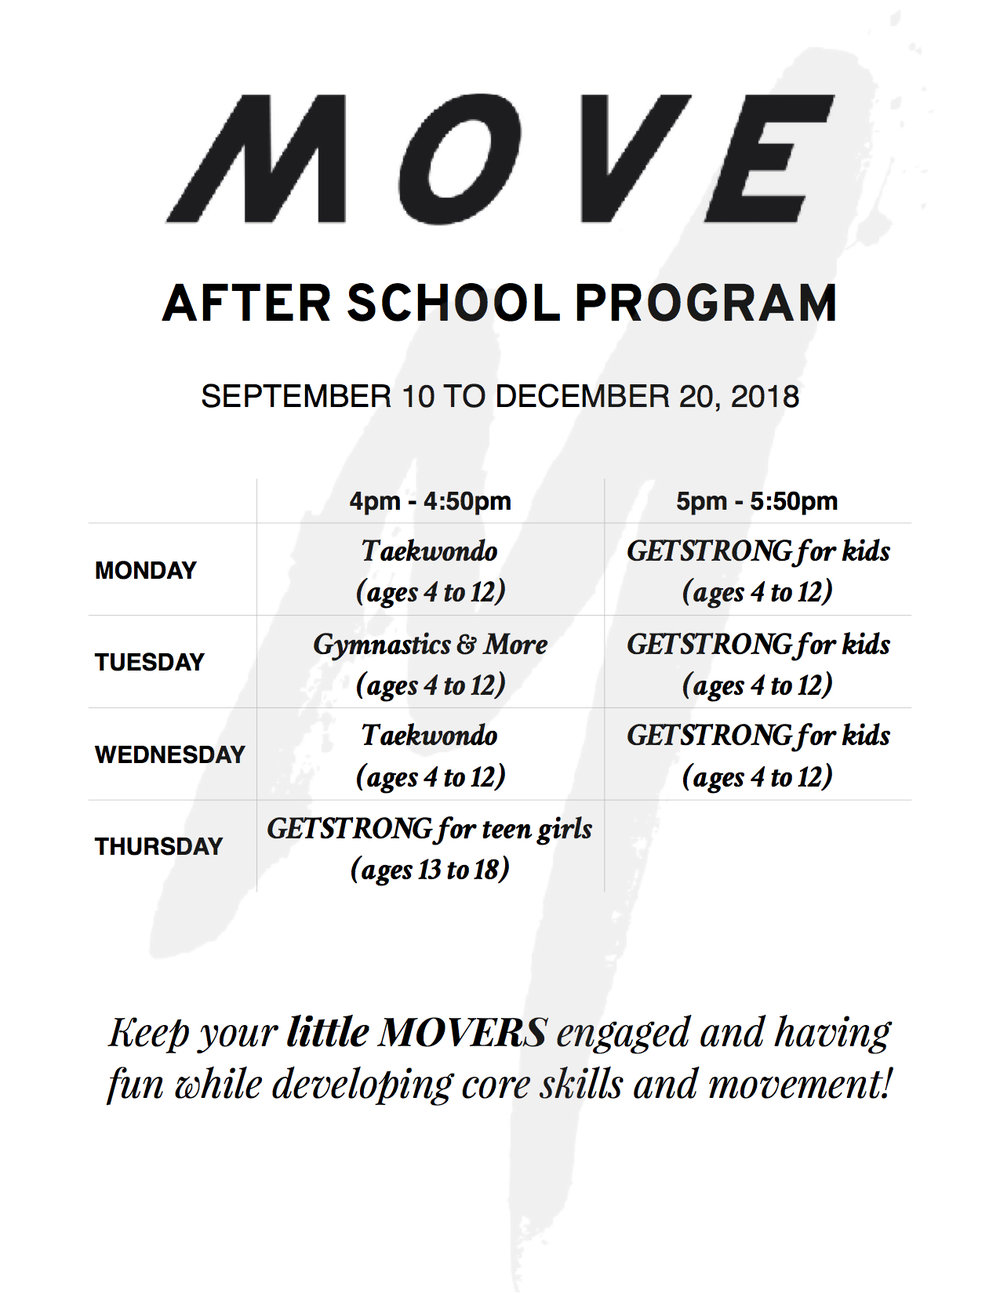 MOVE_afterschool_program_schedule.jpg